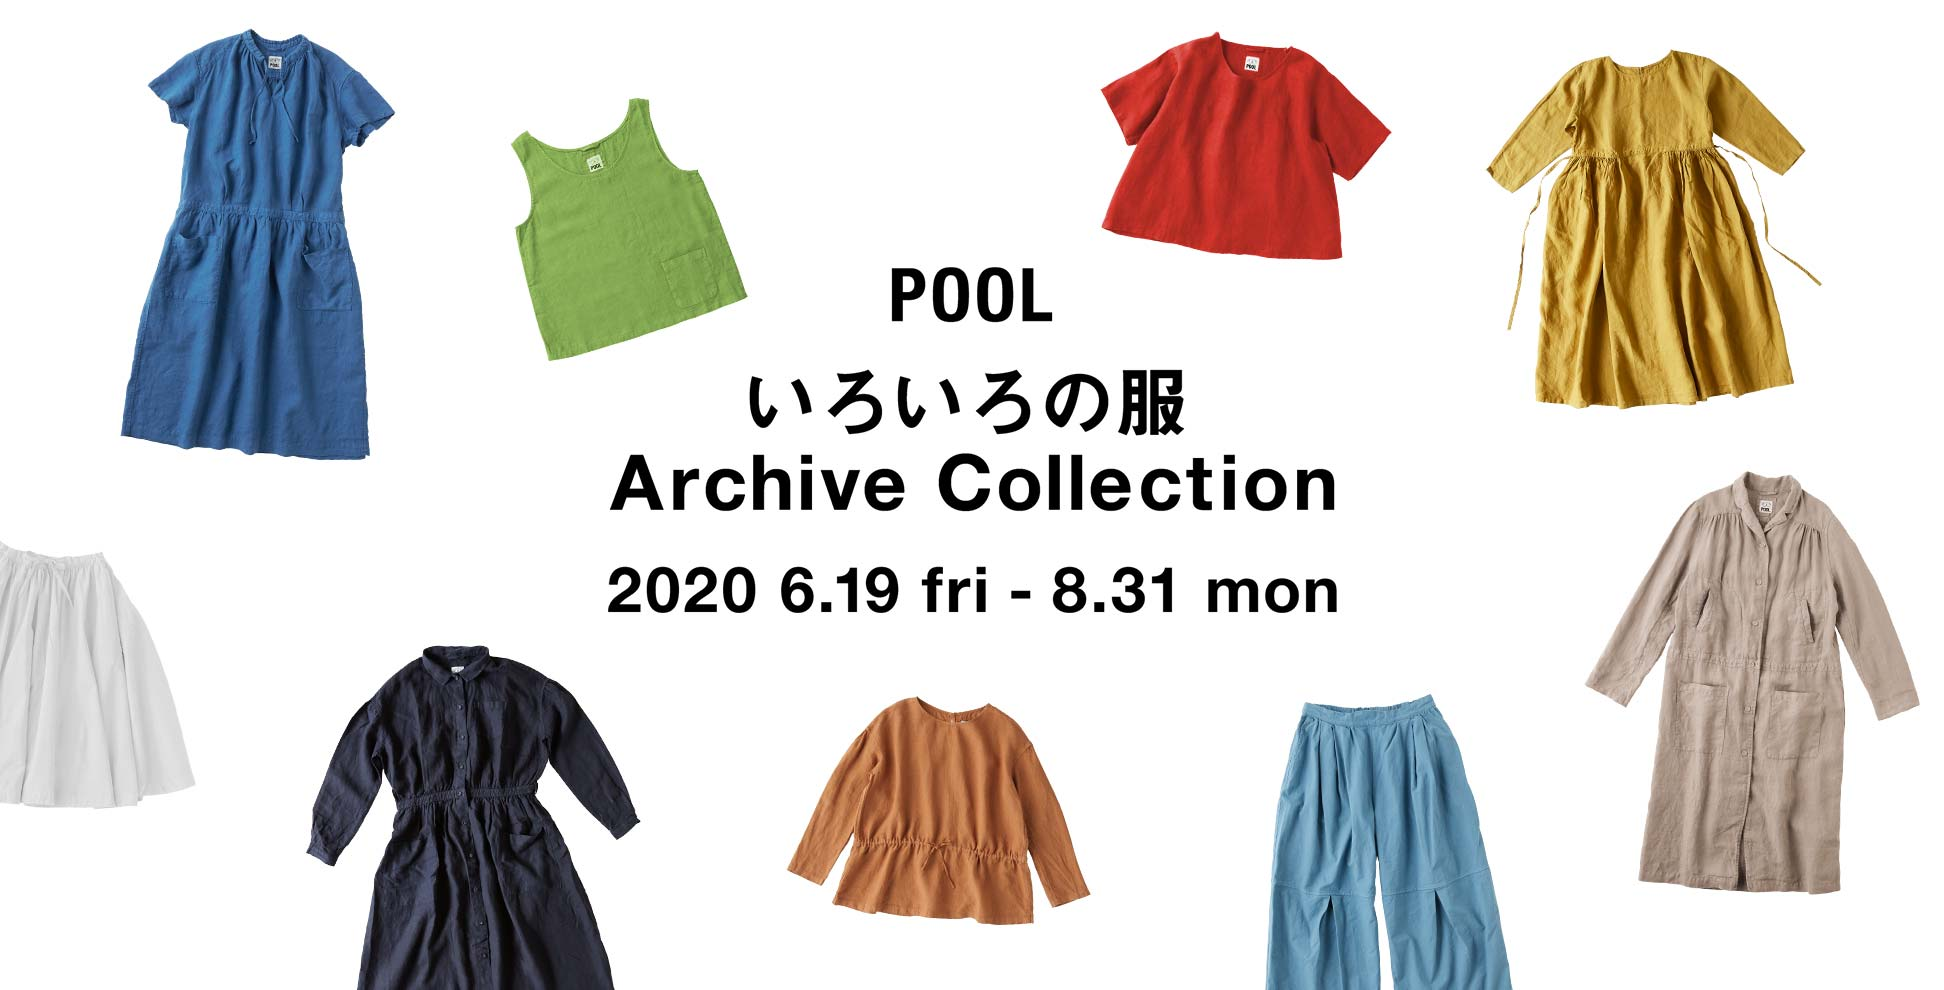 POOL いろいろの服 Archive Collection